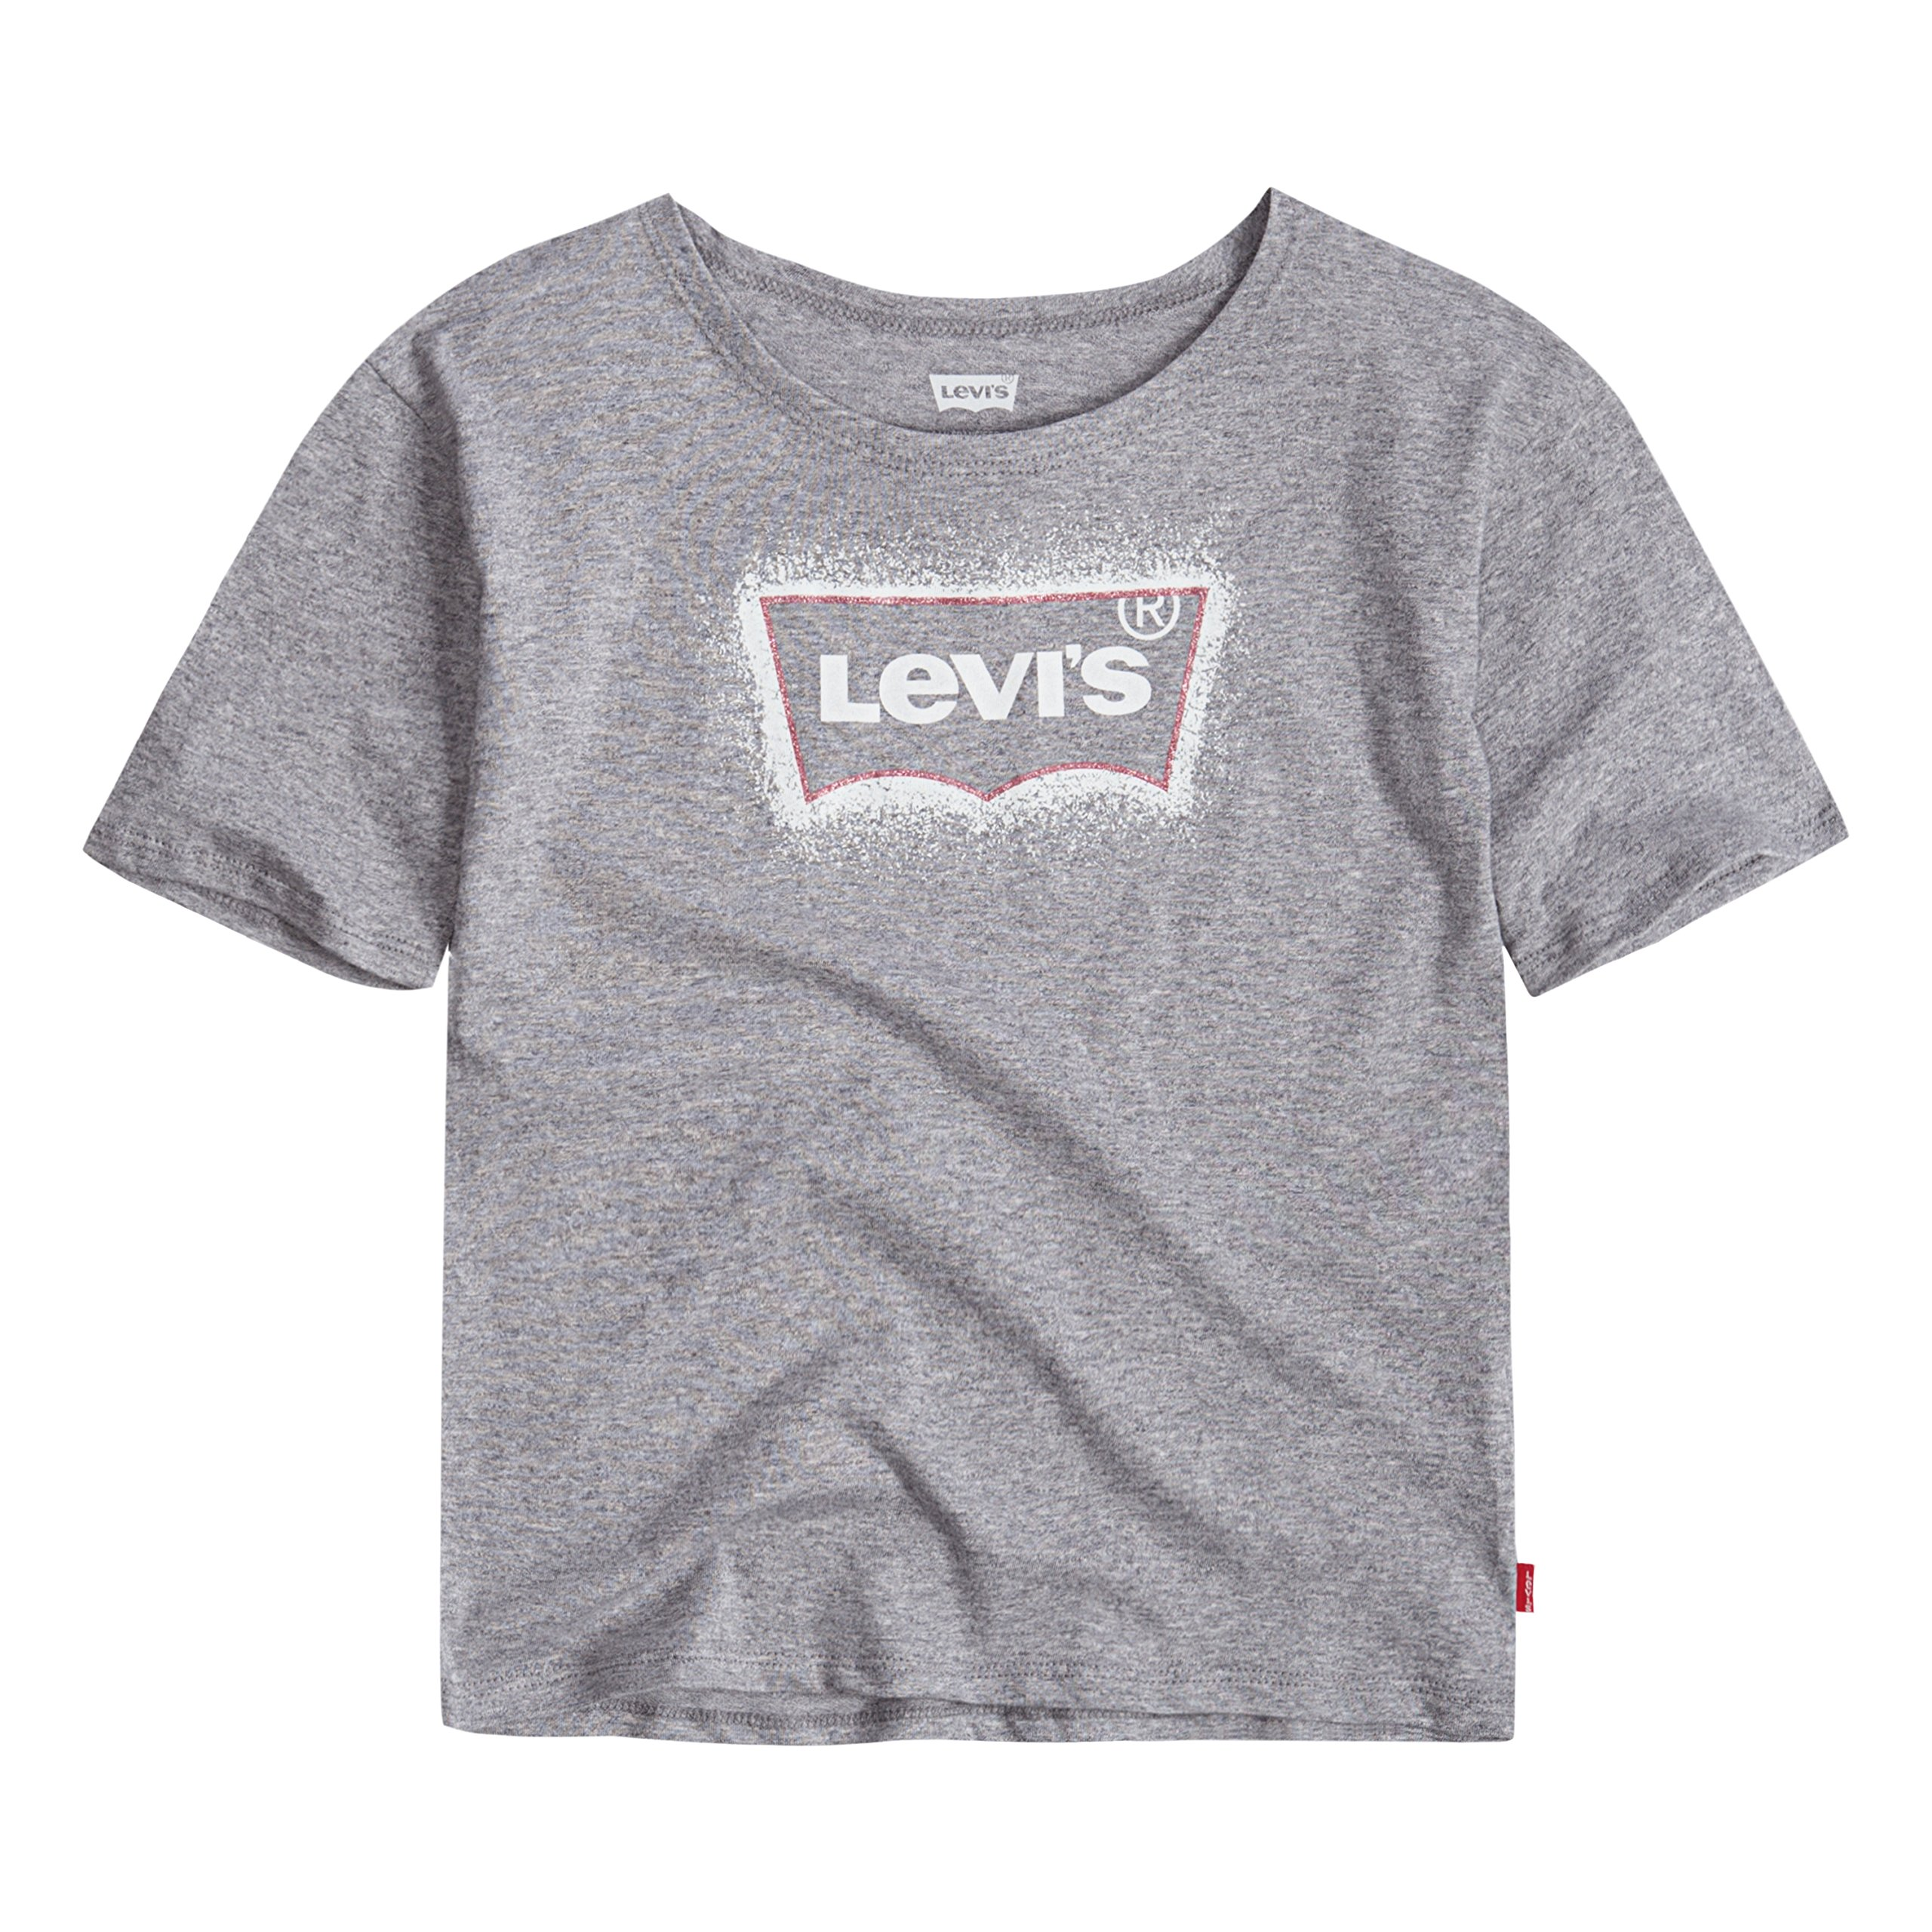 Levi's Girls Batwing T-Shirt, Marled Grey, M